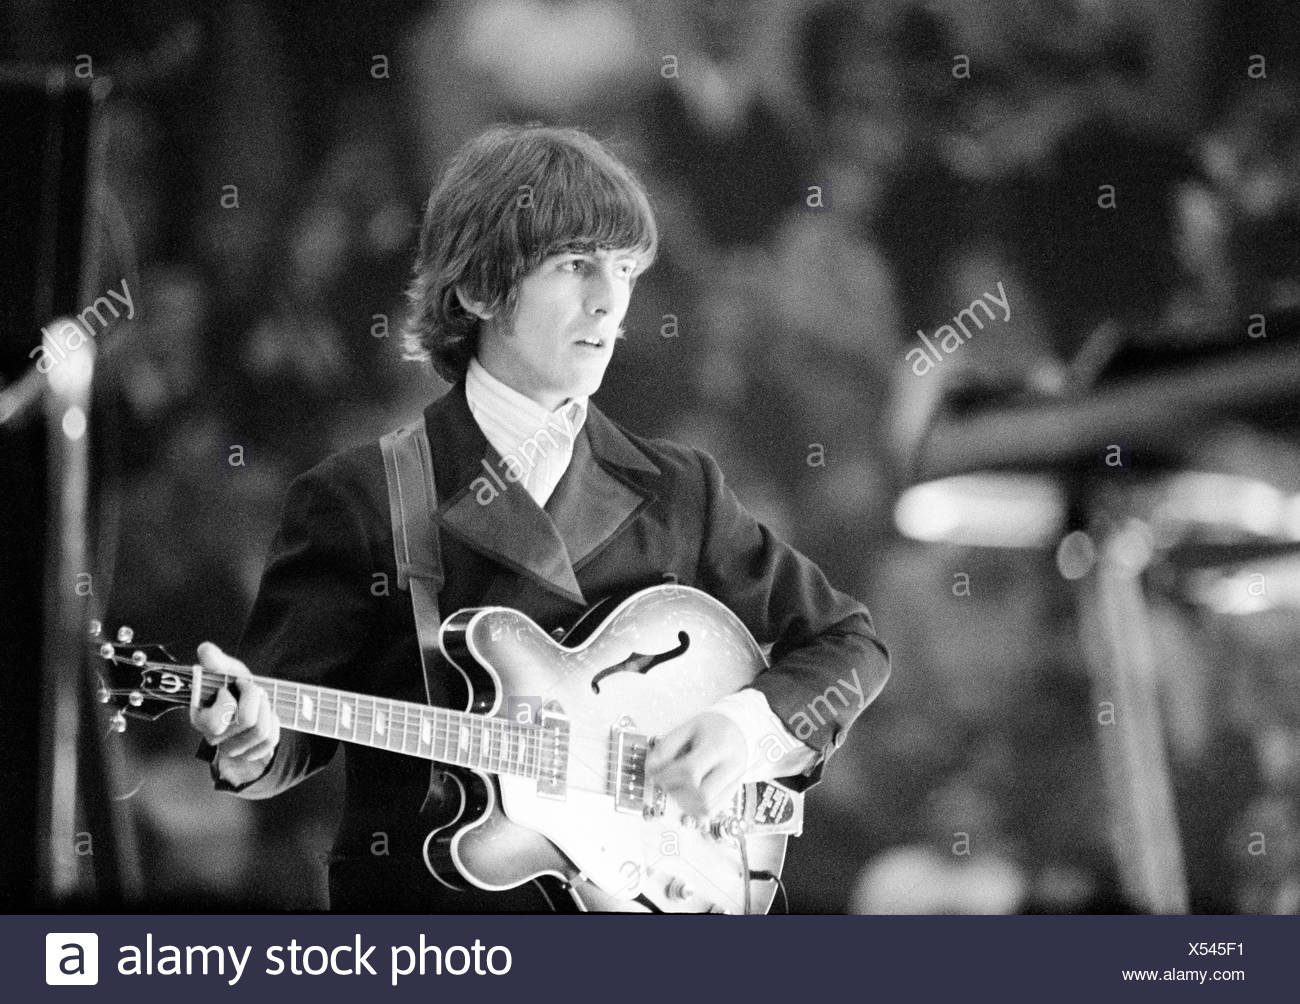 The Beatles music pop group band concert Germany Essen 1966 George Harrison guitar guitarist Stock Photo